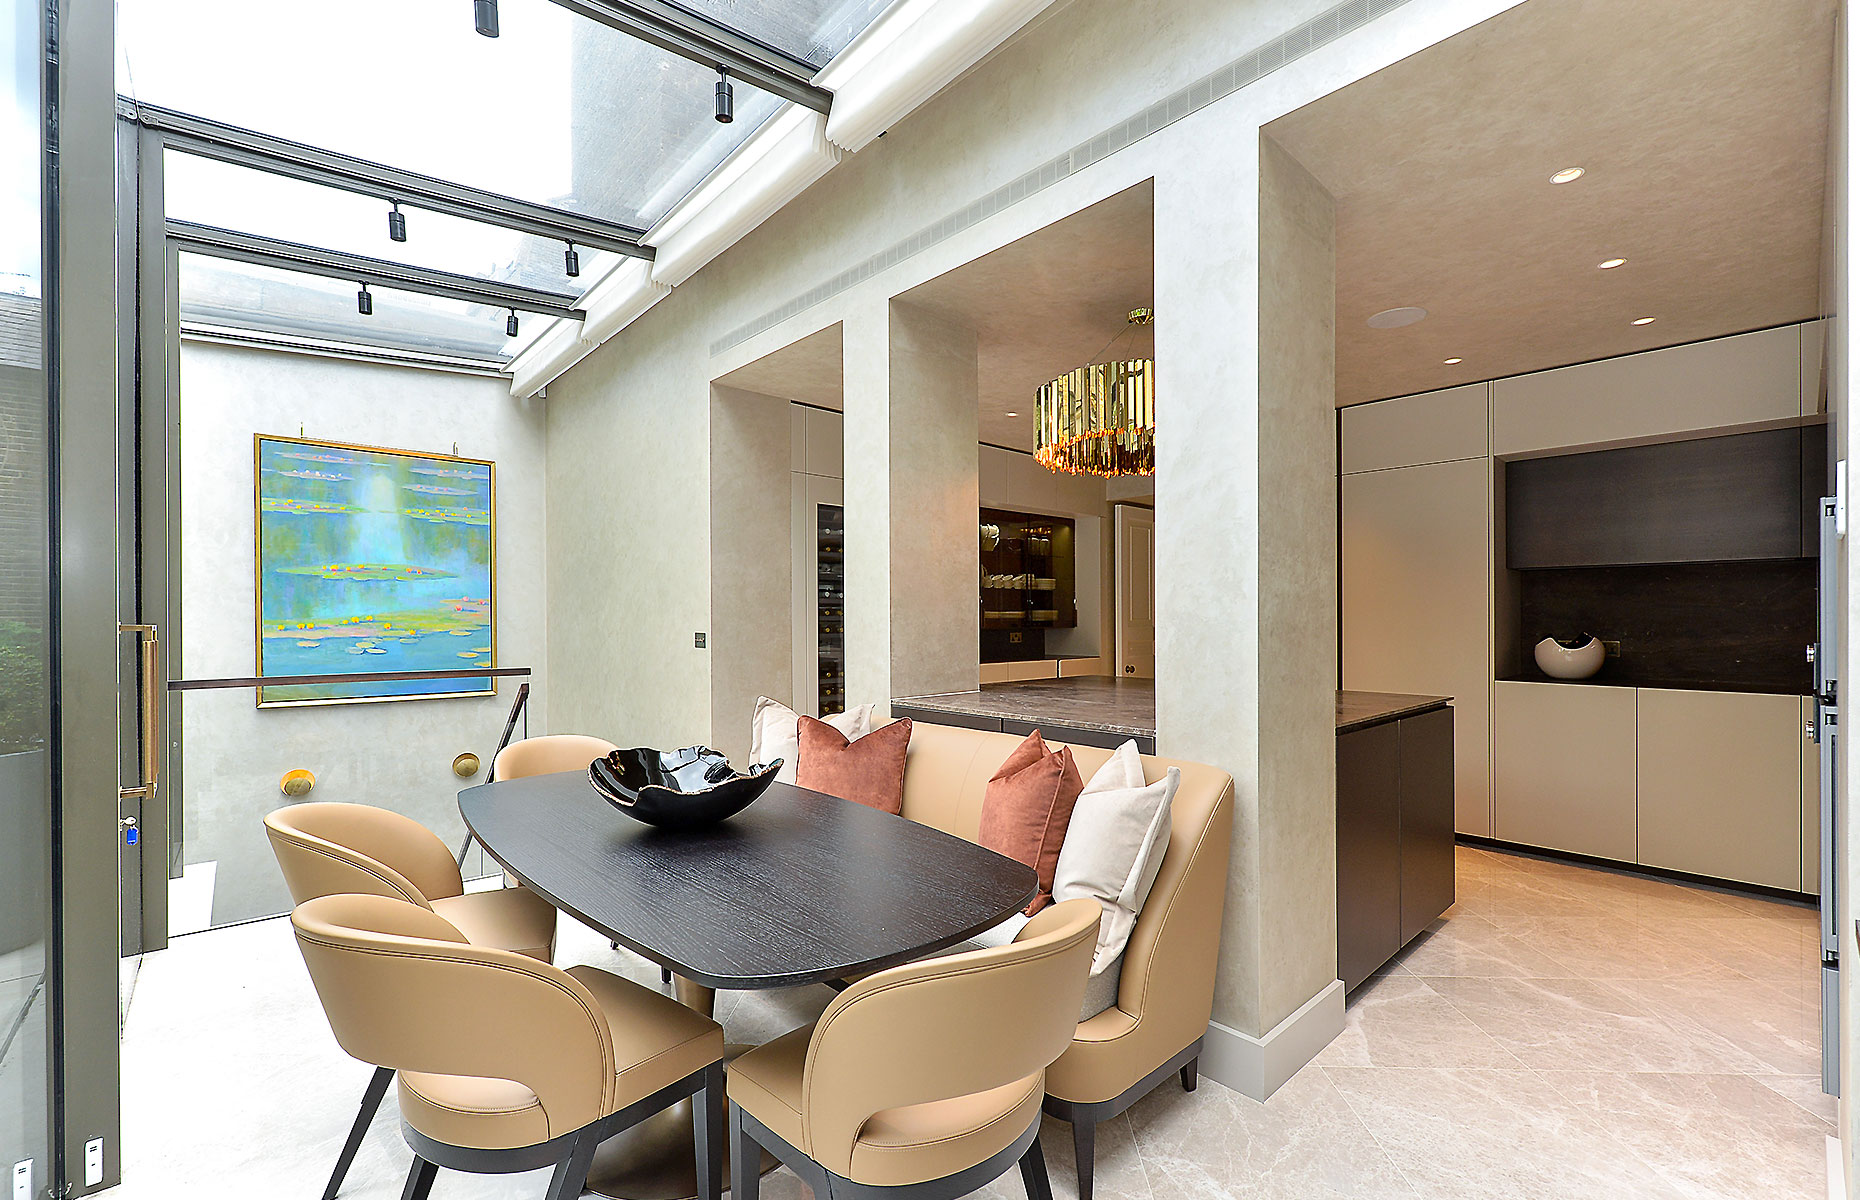 This stylish city home is a rare find in the capital. Image: Rokstone, Marylebone via OnTheMarket